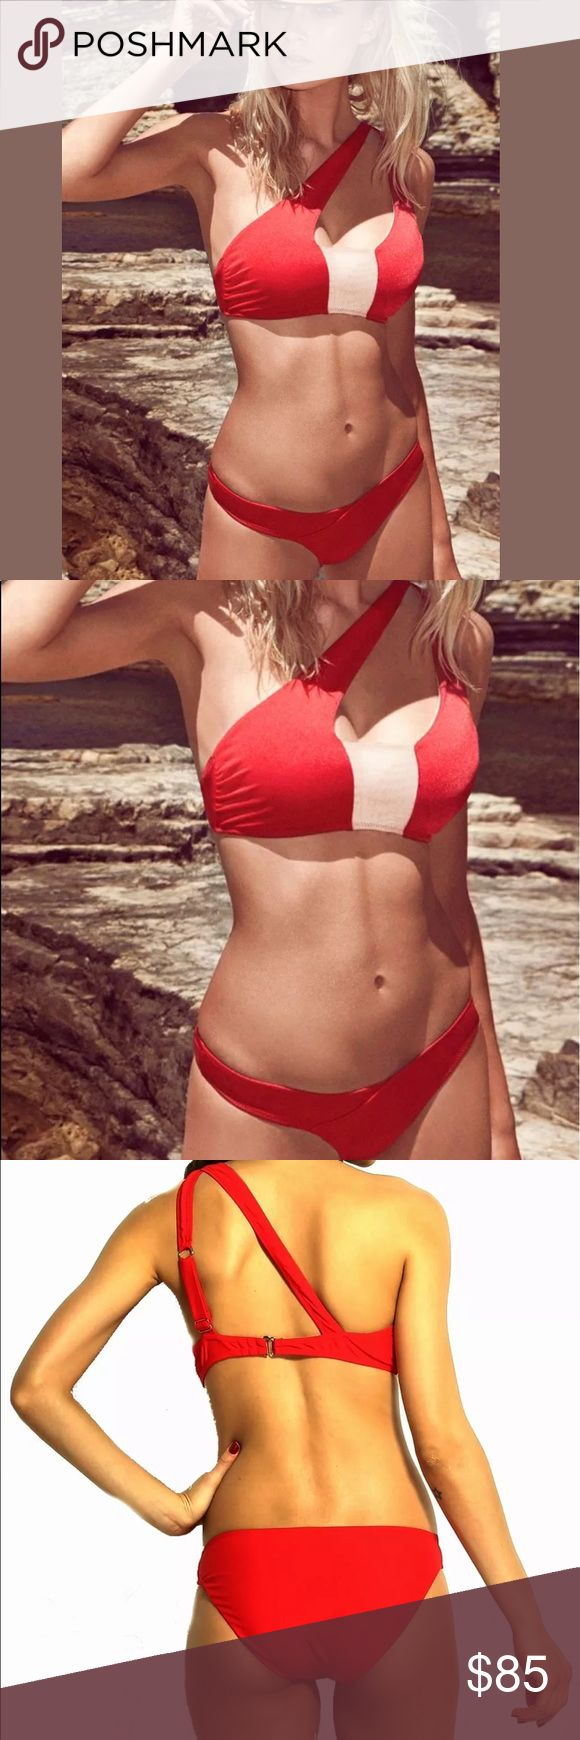 ¥firebird¥ Asymmetric Bandeau Red Bikini Just in! • ¥firebird¥ Fire on Fiji • Asymmetric Red Bikini • Bandeau top with adjustable asymmetrical one shoulder straps. Contrasting Block panel. Low rise cut detailed bottom. Breathable and durable nylon + spandex. Brand new/untagged. Only one Small and One medium. Swim Bikinis